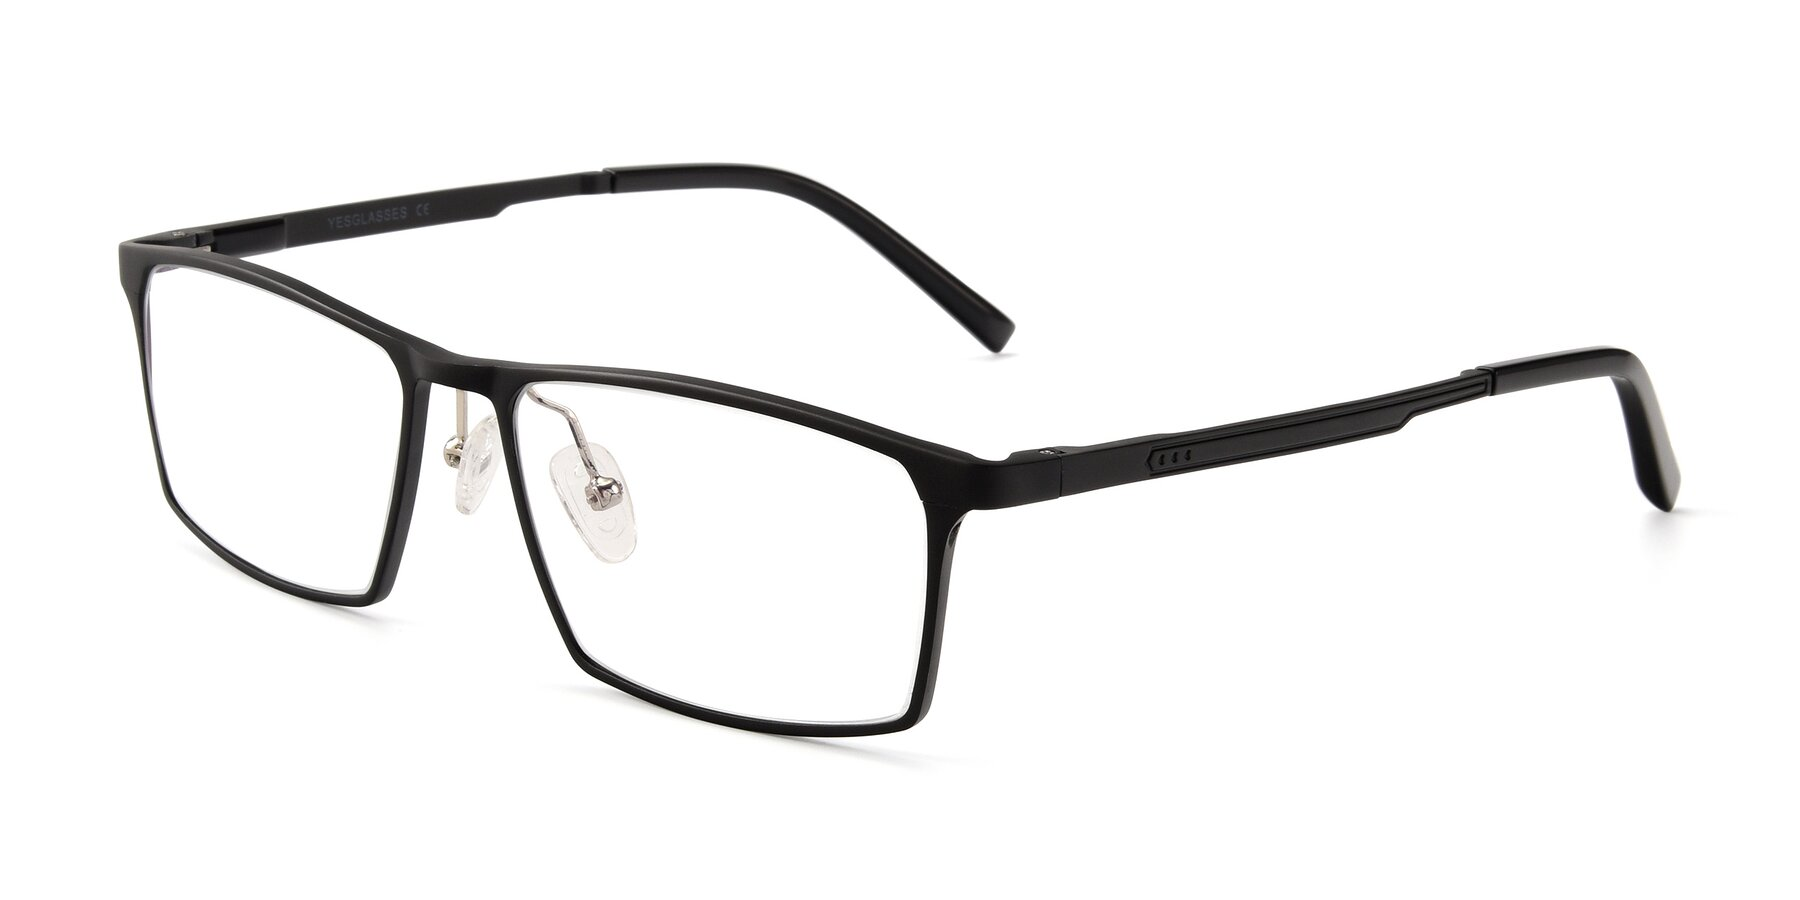 Angle of CX6341 in Black with Clear Eyeglass Lenses